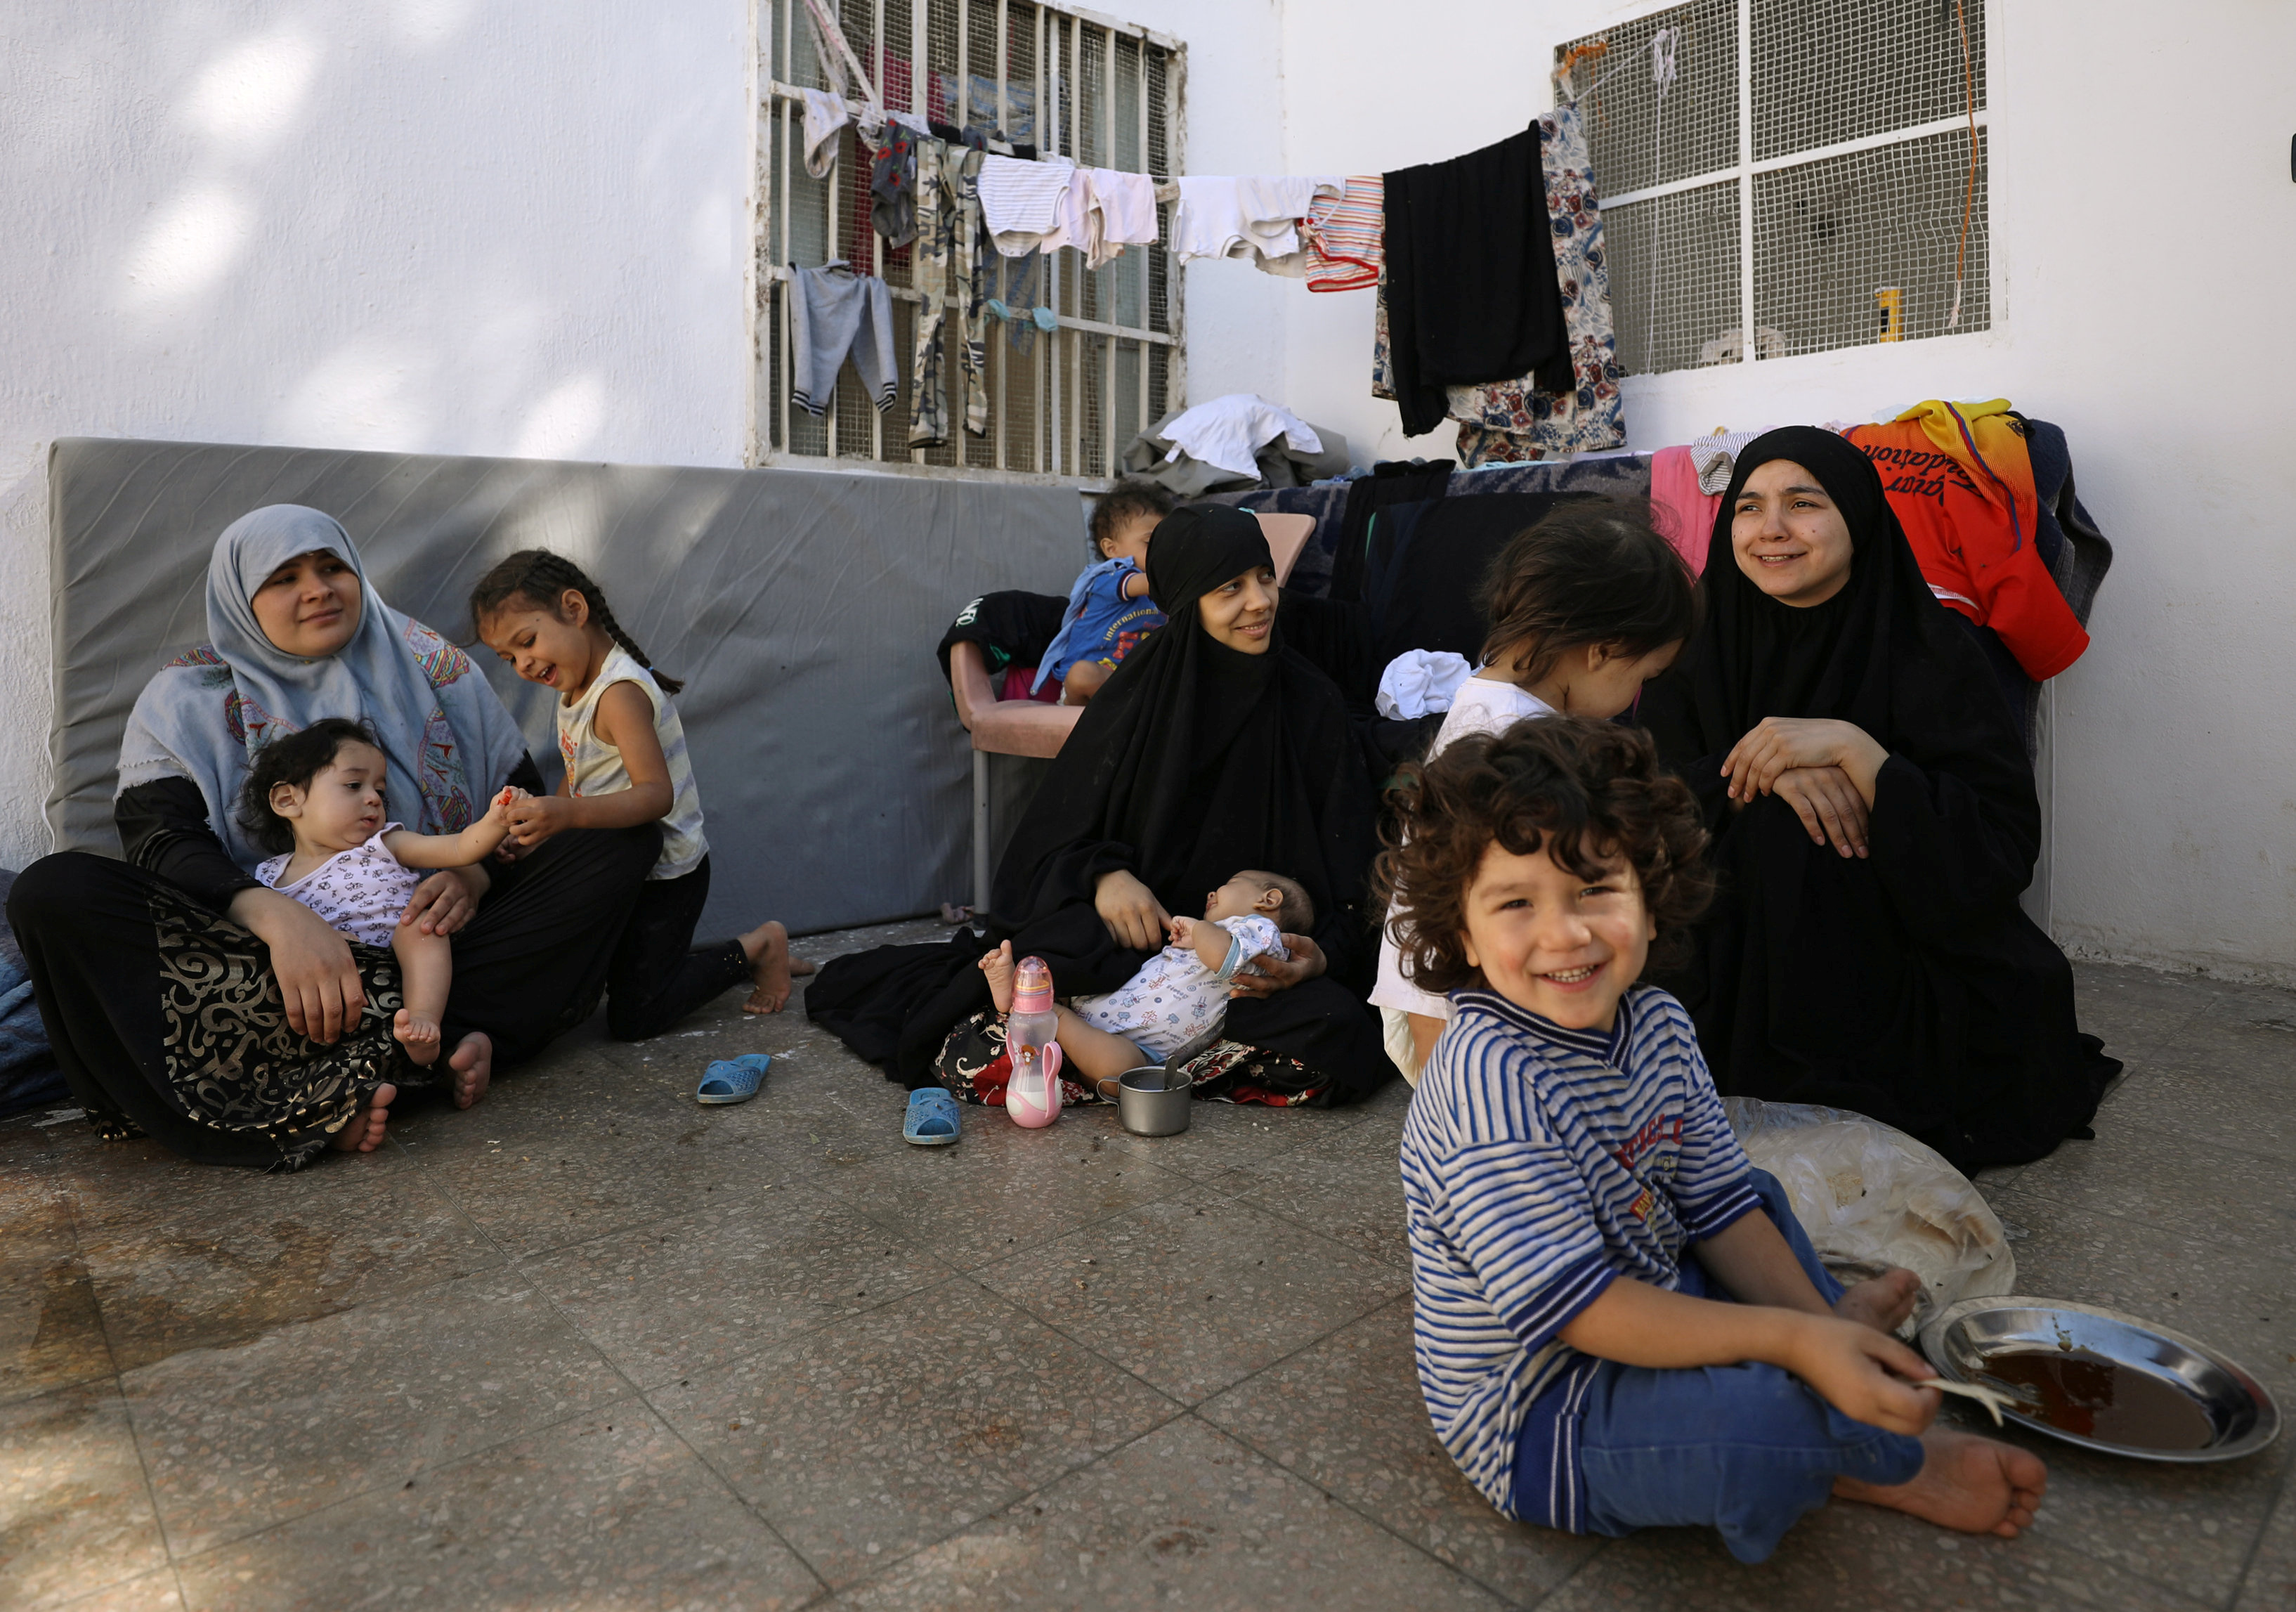 FILE - From left, Tunisians Khadouja al-Humri, Iman Othman and Lebanese Nour al-Huda, wives of former Islamic State fighters, sit with their children at a camp for displaced people in Ain Issa, north of Raqqa, Syria, June 21, 2017.